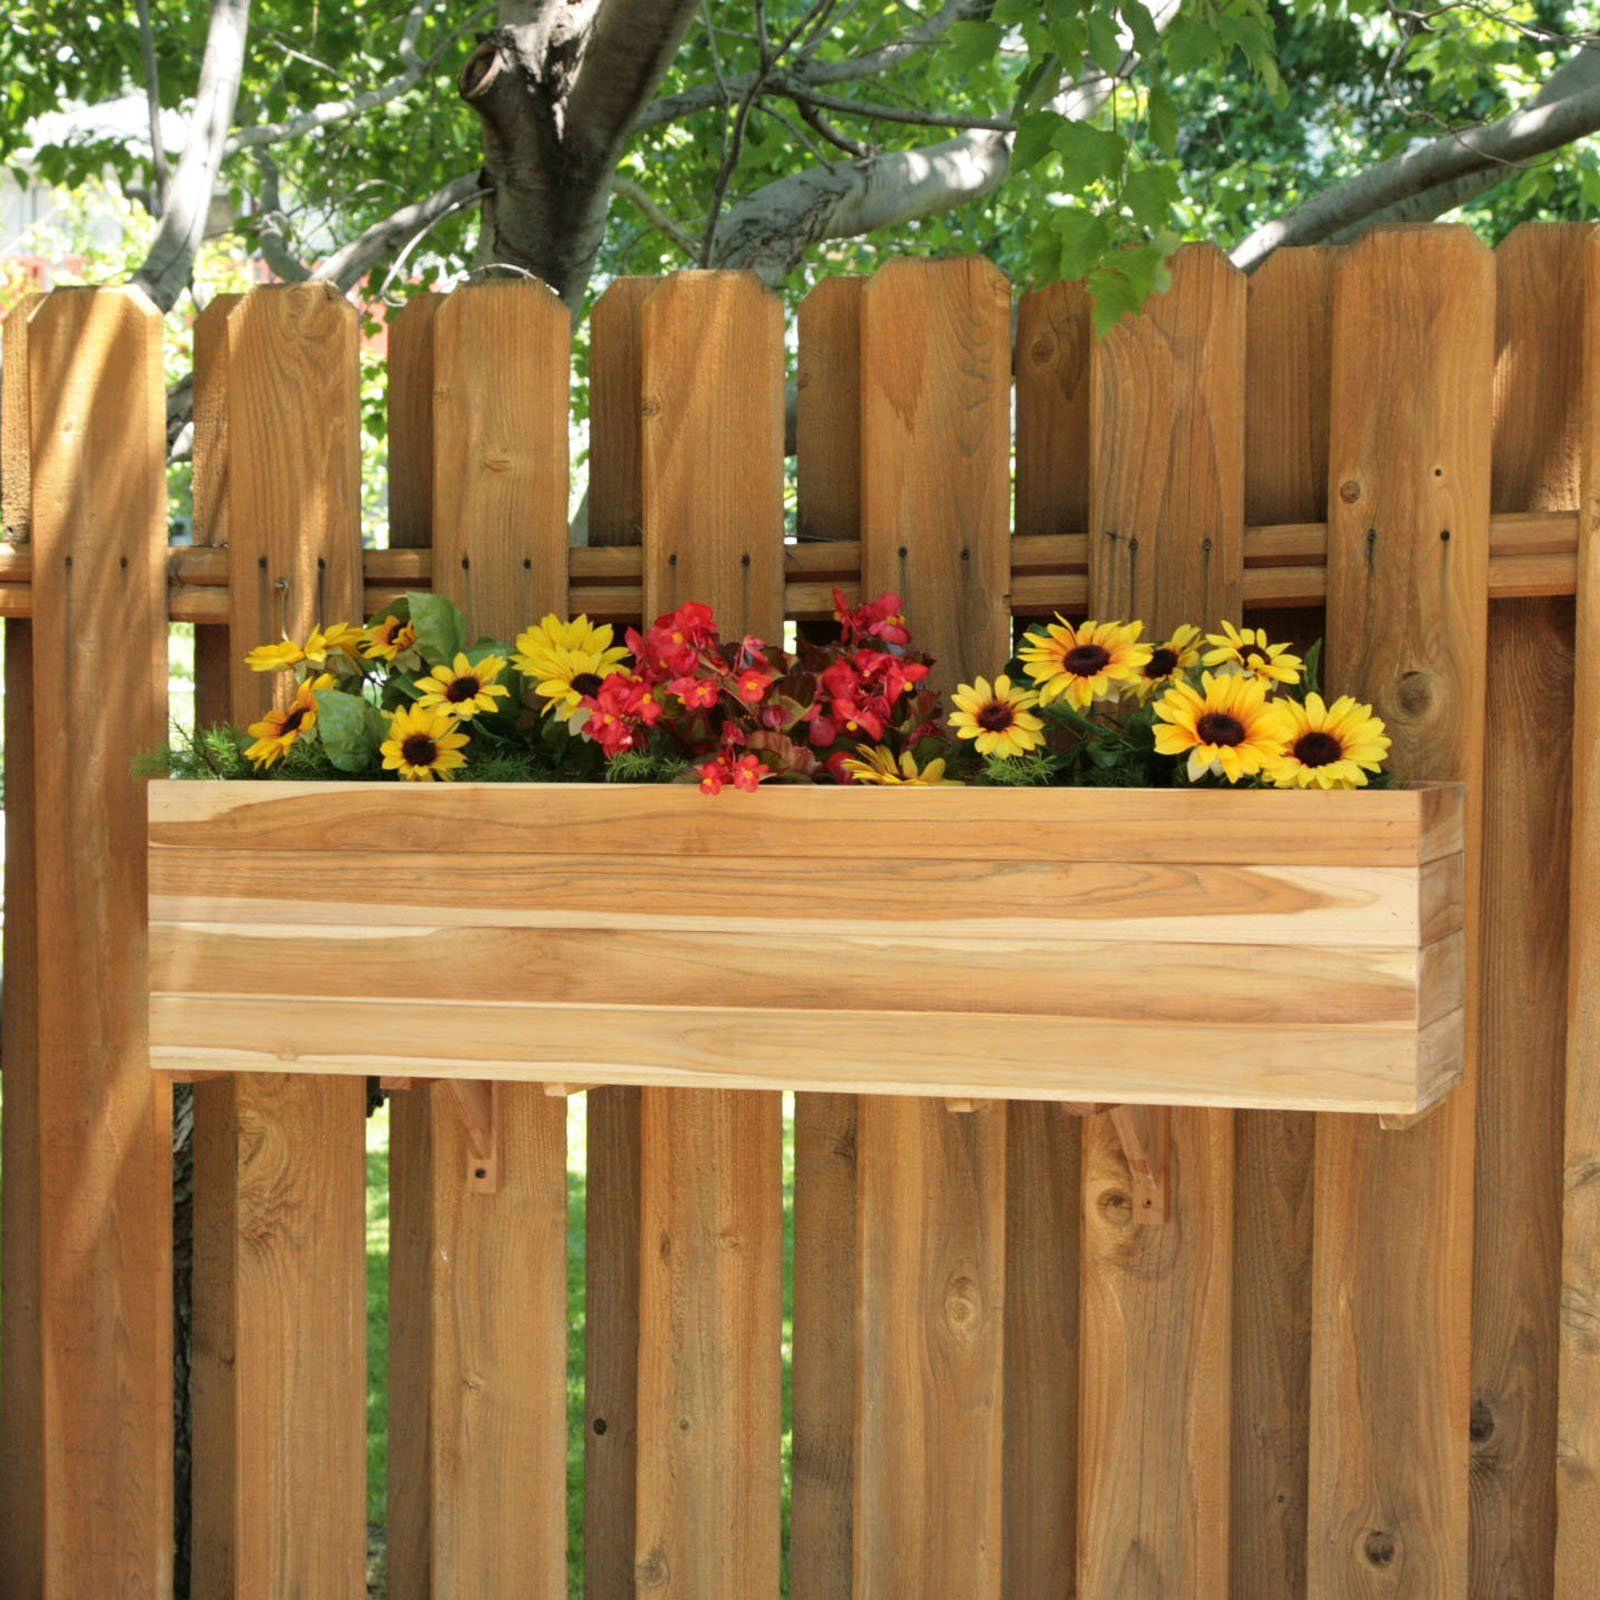 Garden And Patio, Floating Wooden Flower Box Design On